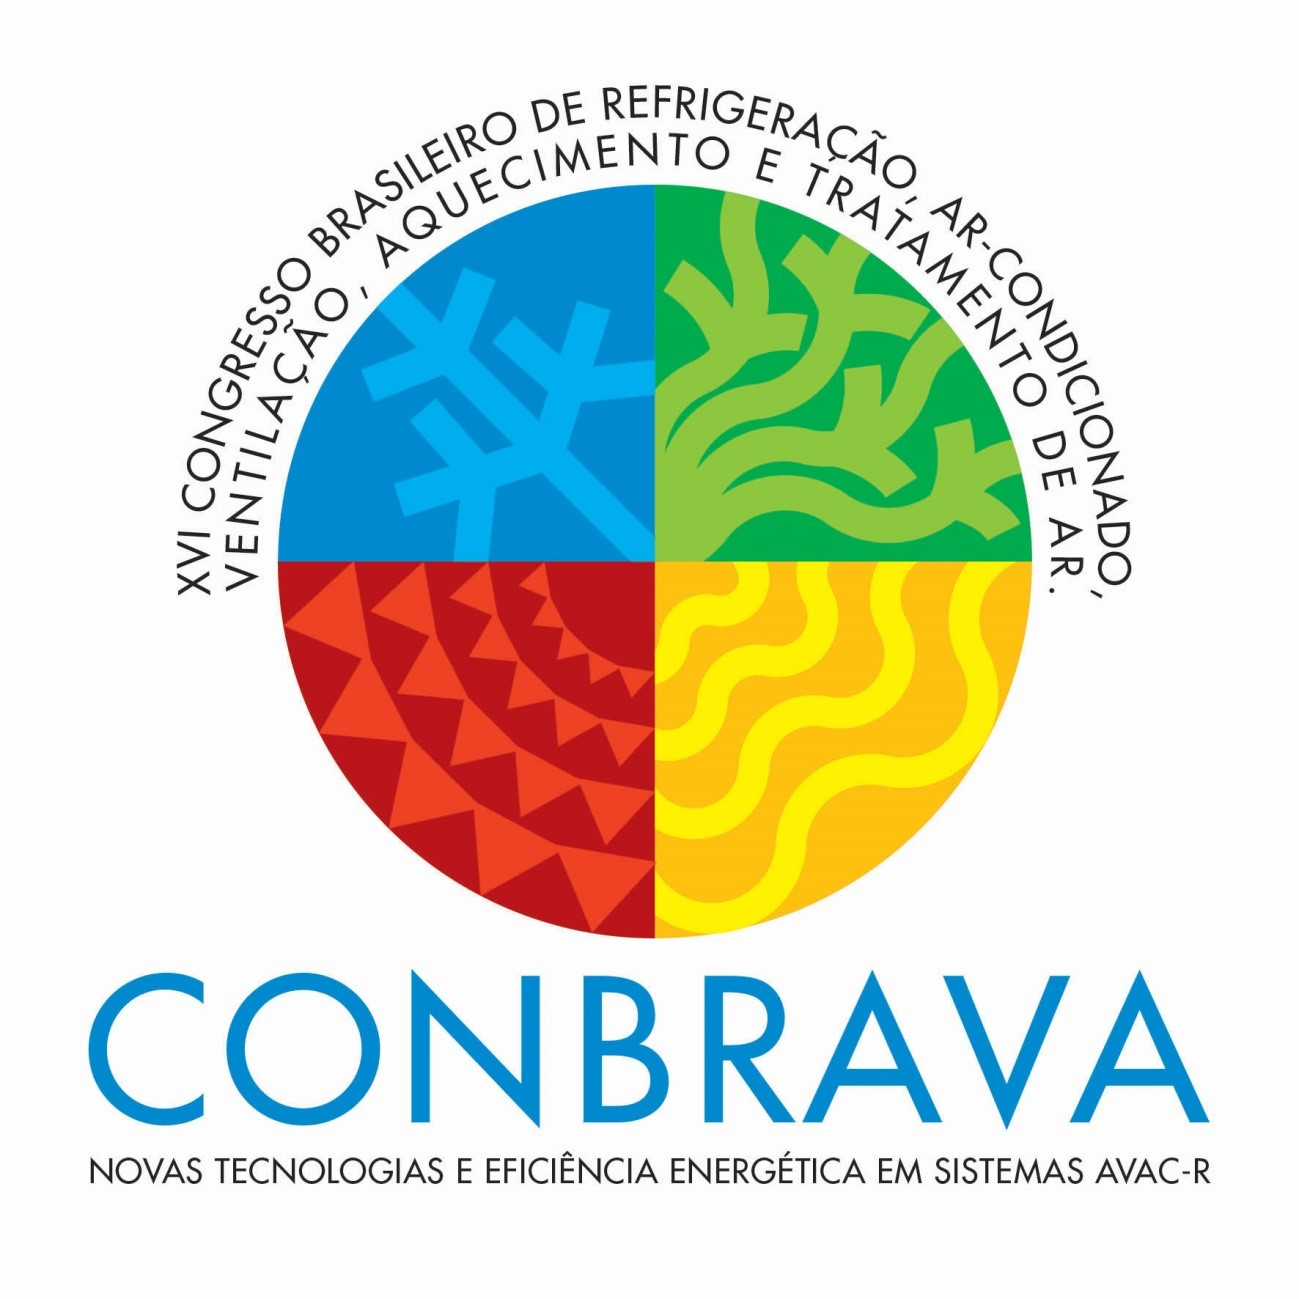 Carta aberta ao mercado – Legado do CONBRAVA 2019